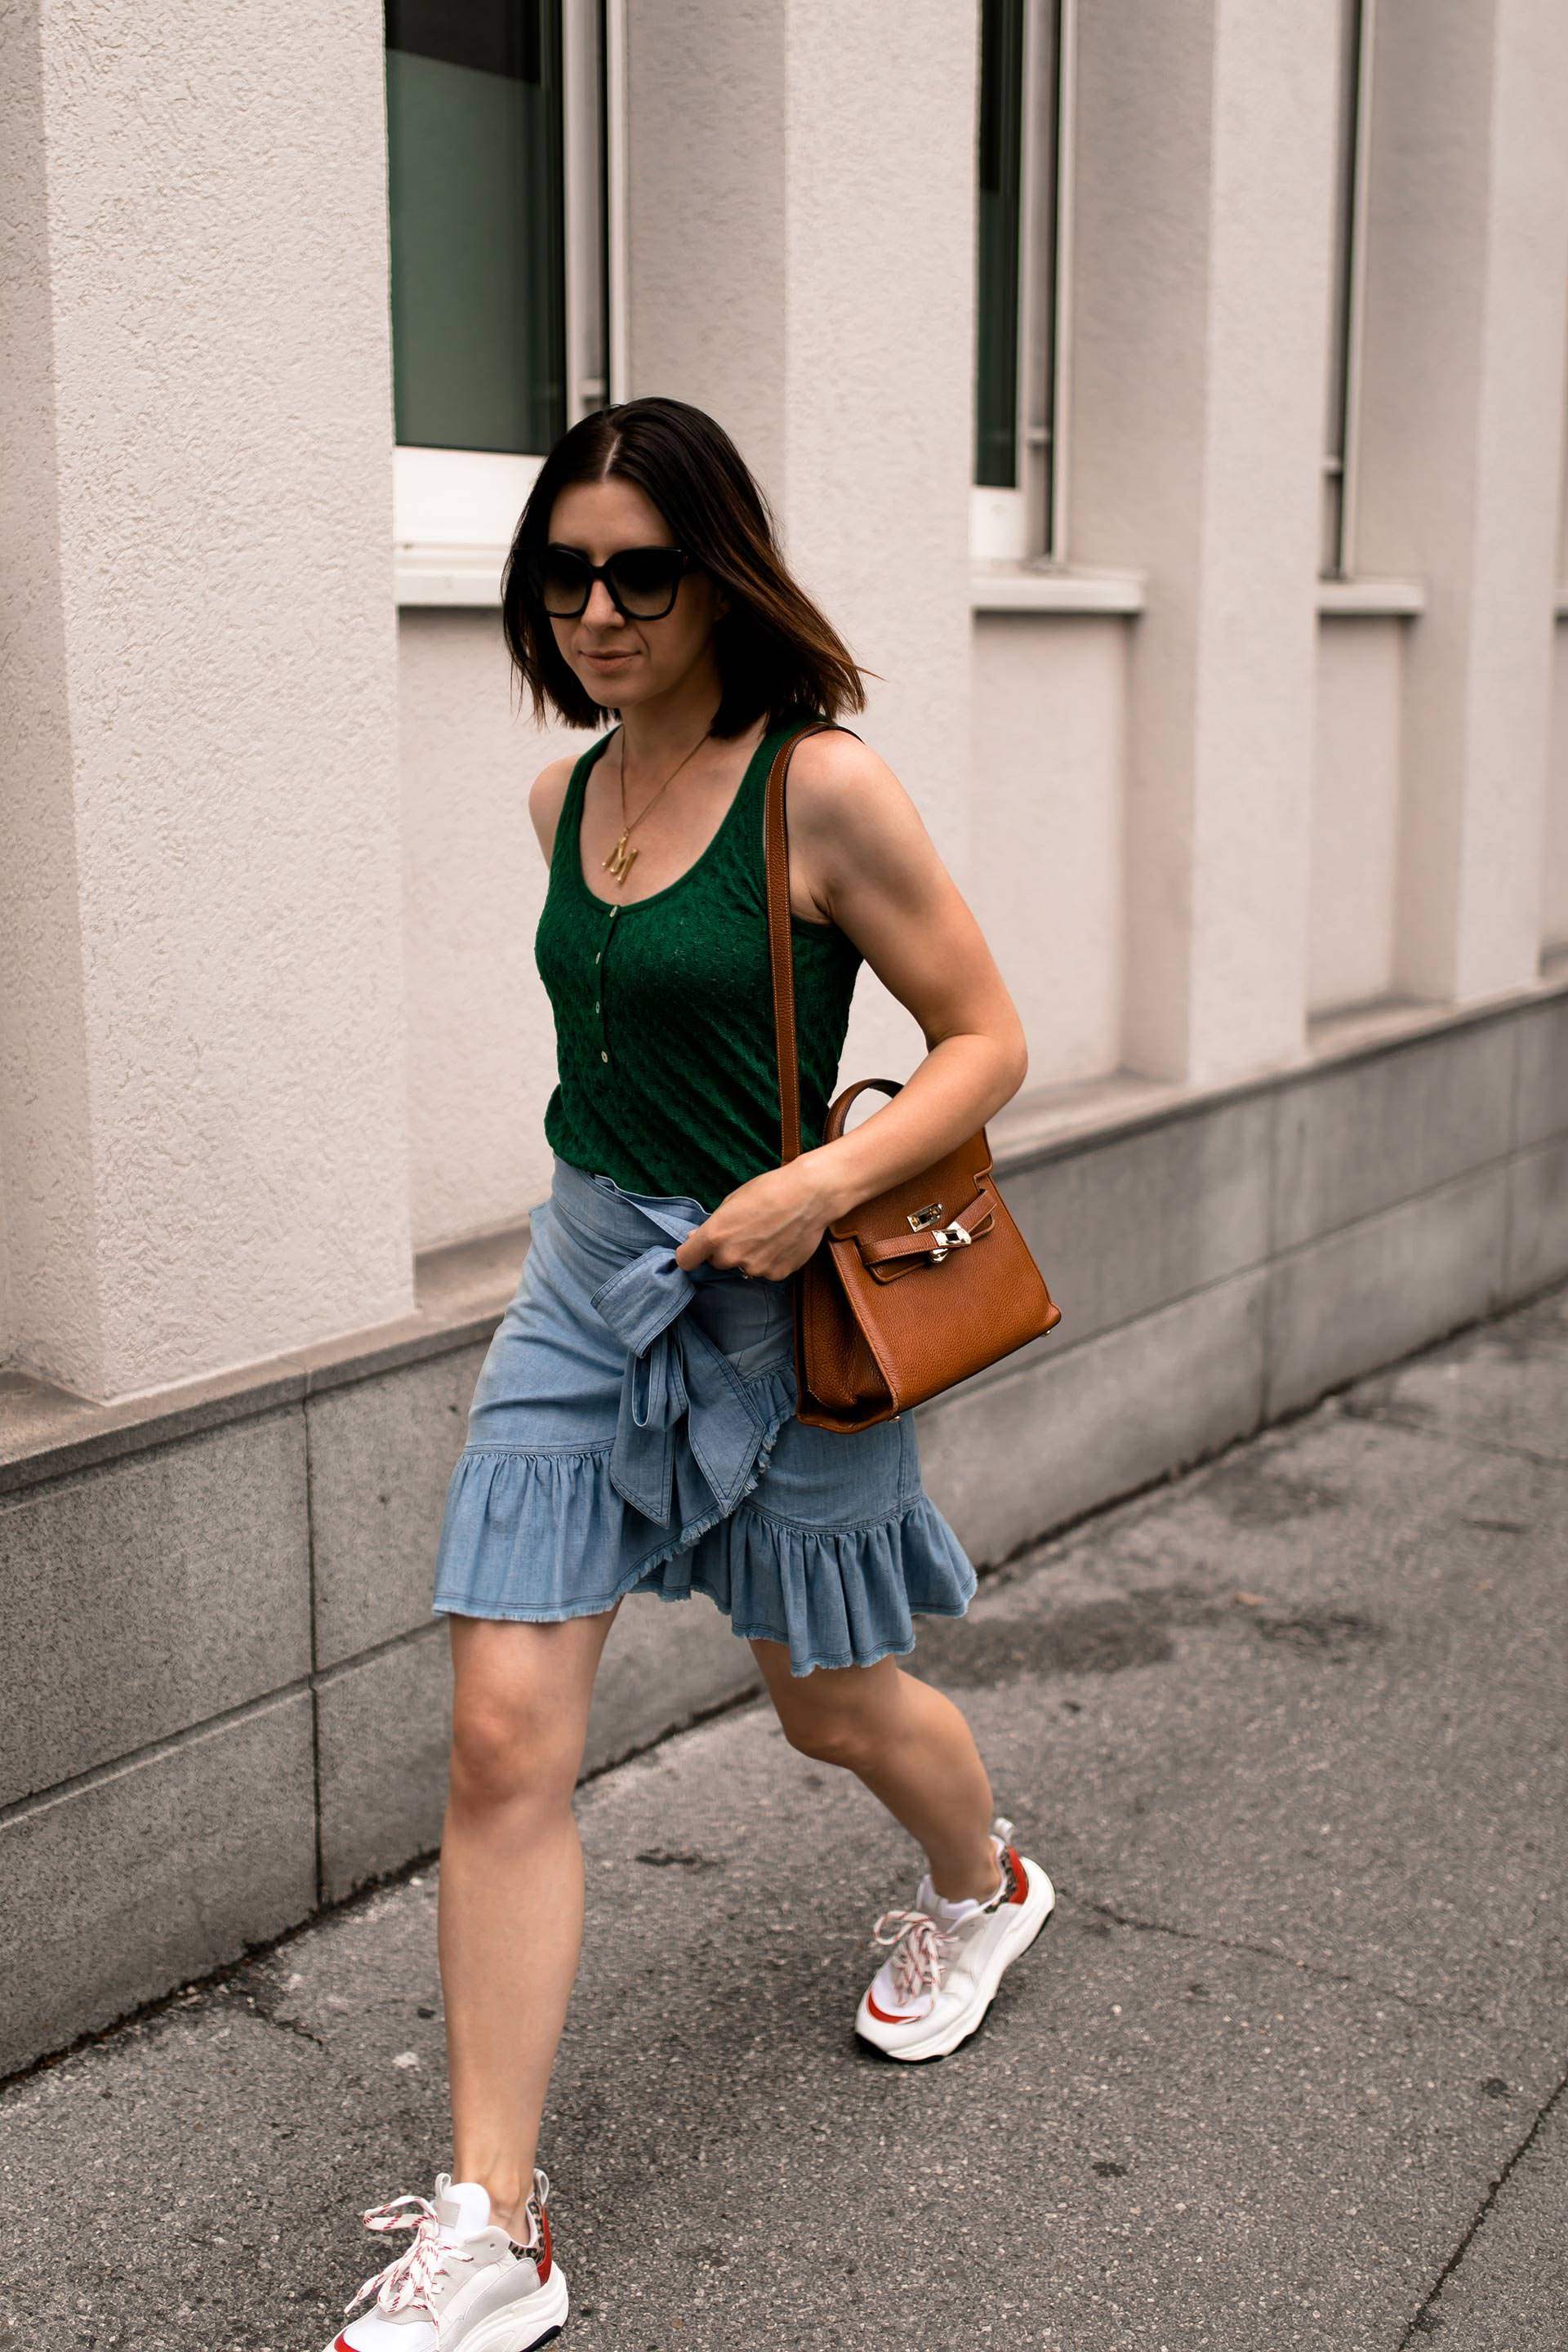 Damen sommer outfit 2018